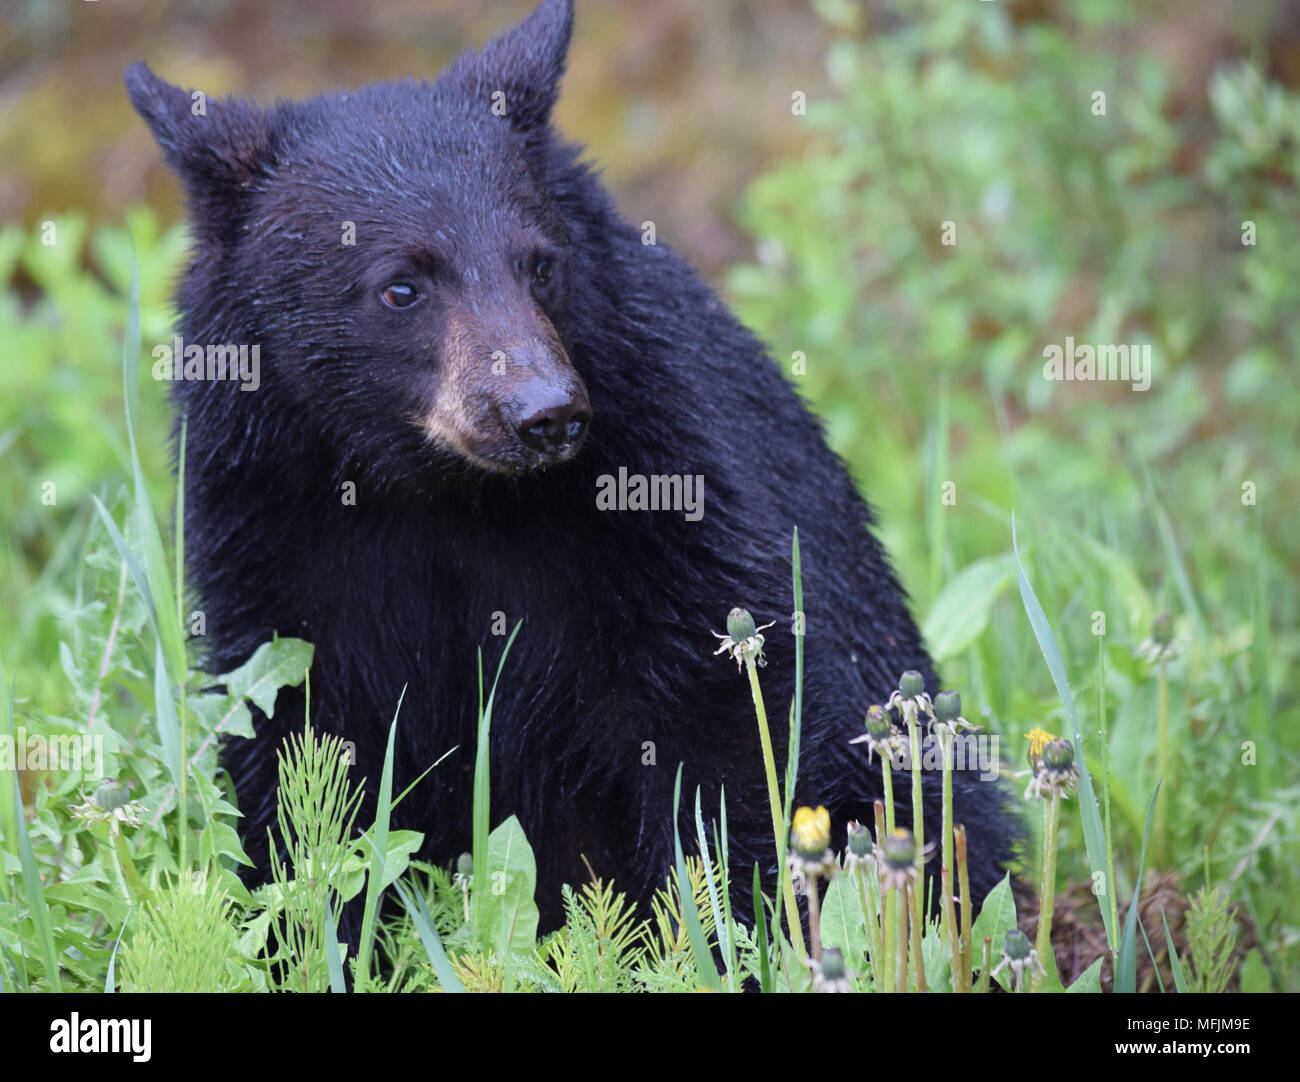 An adorable black bear cub enjoys a breakfast of dandelions on a rainy cool morning in the Canadian Rocky Mountains near Banff, Alberta - Stock Image